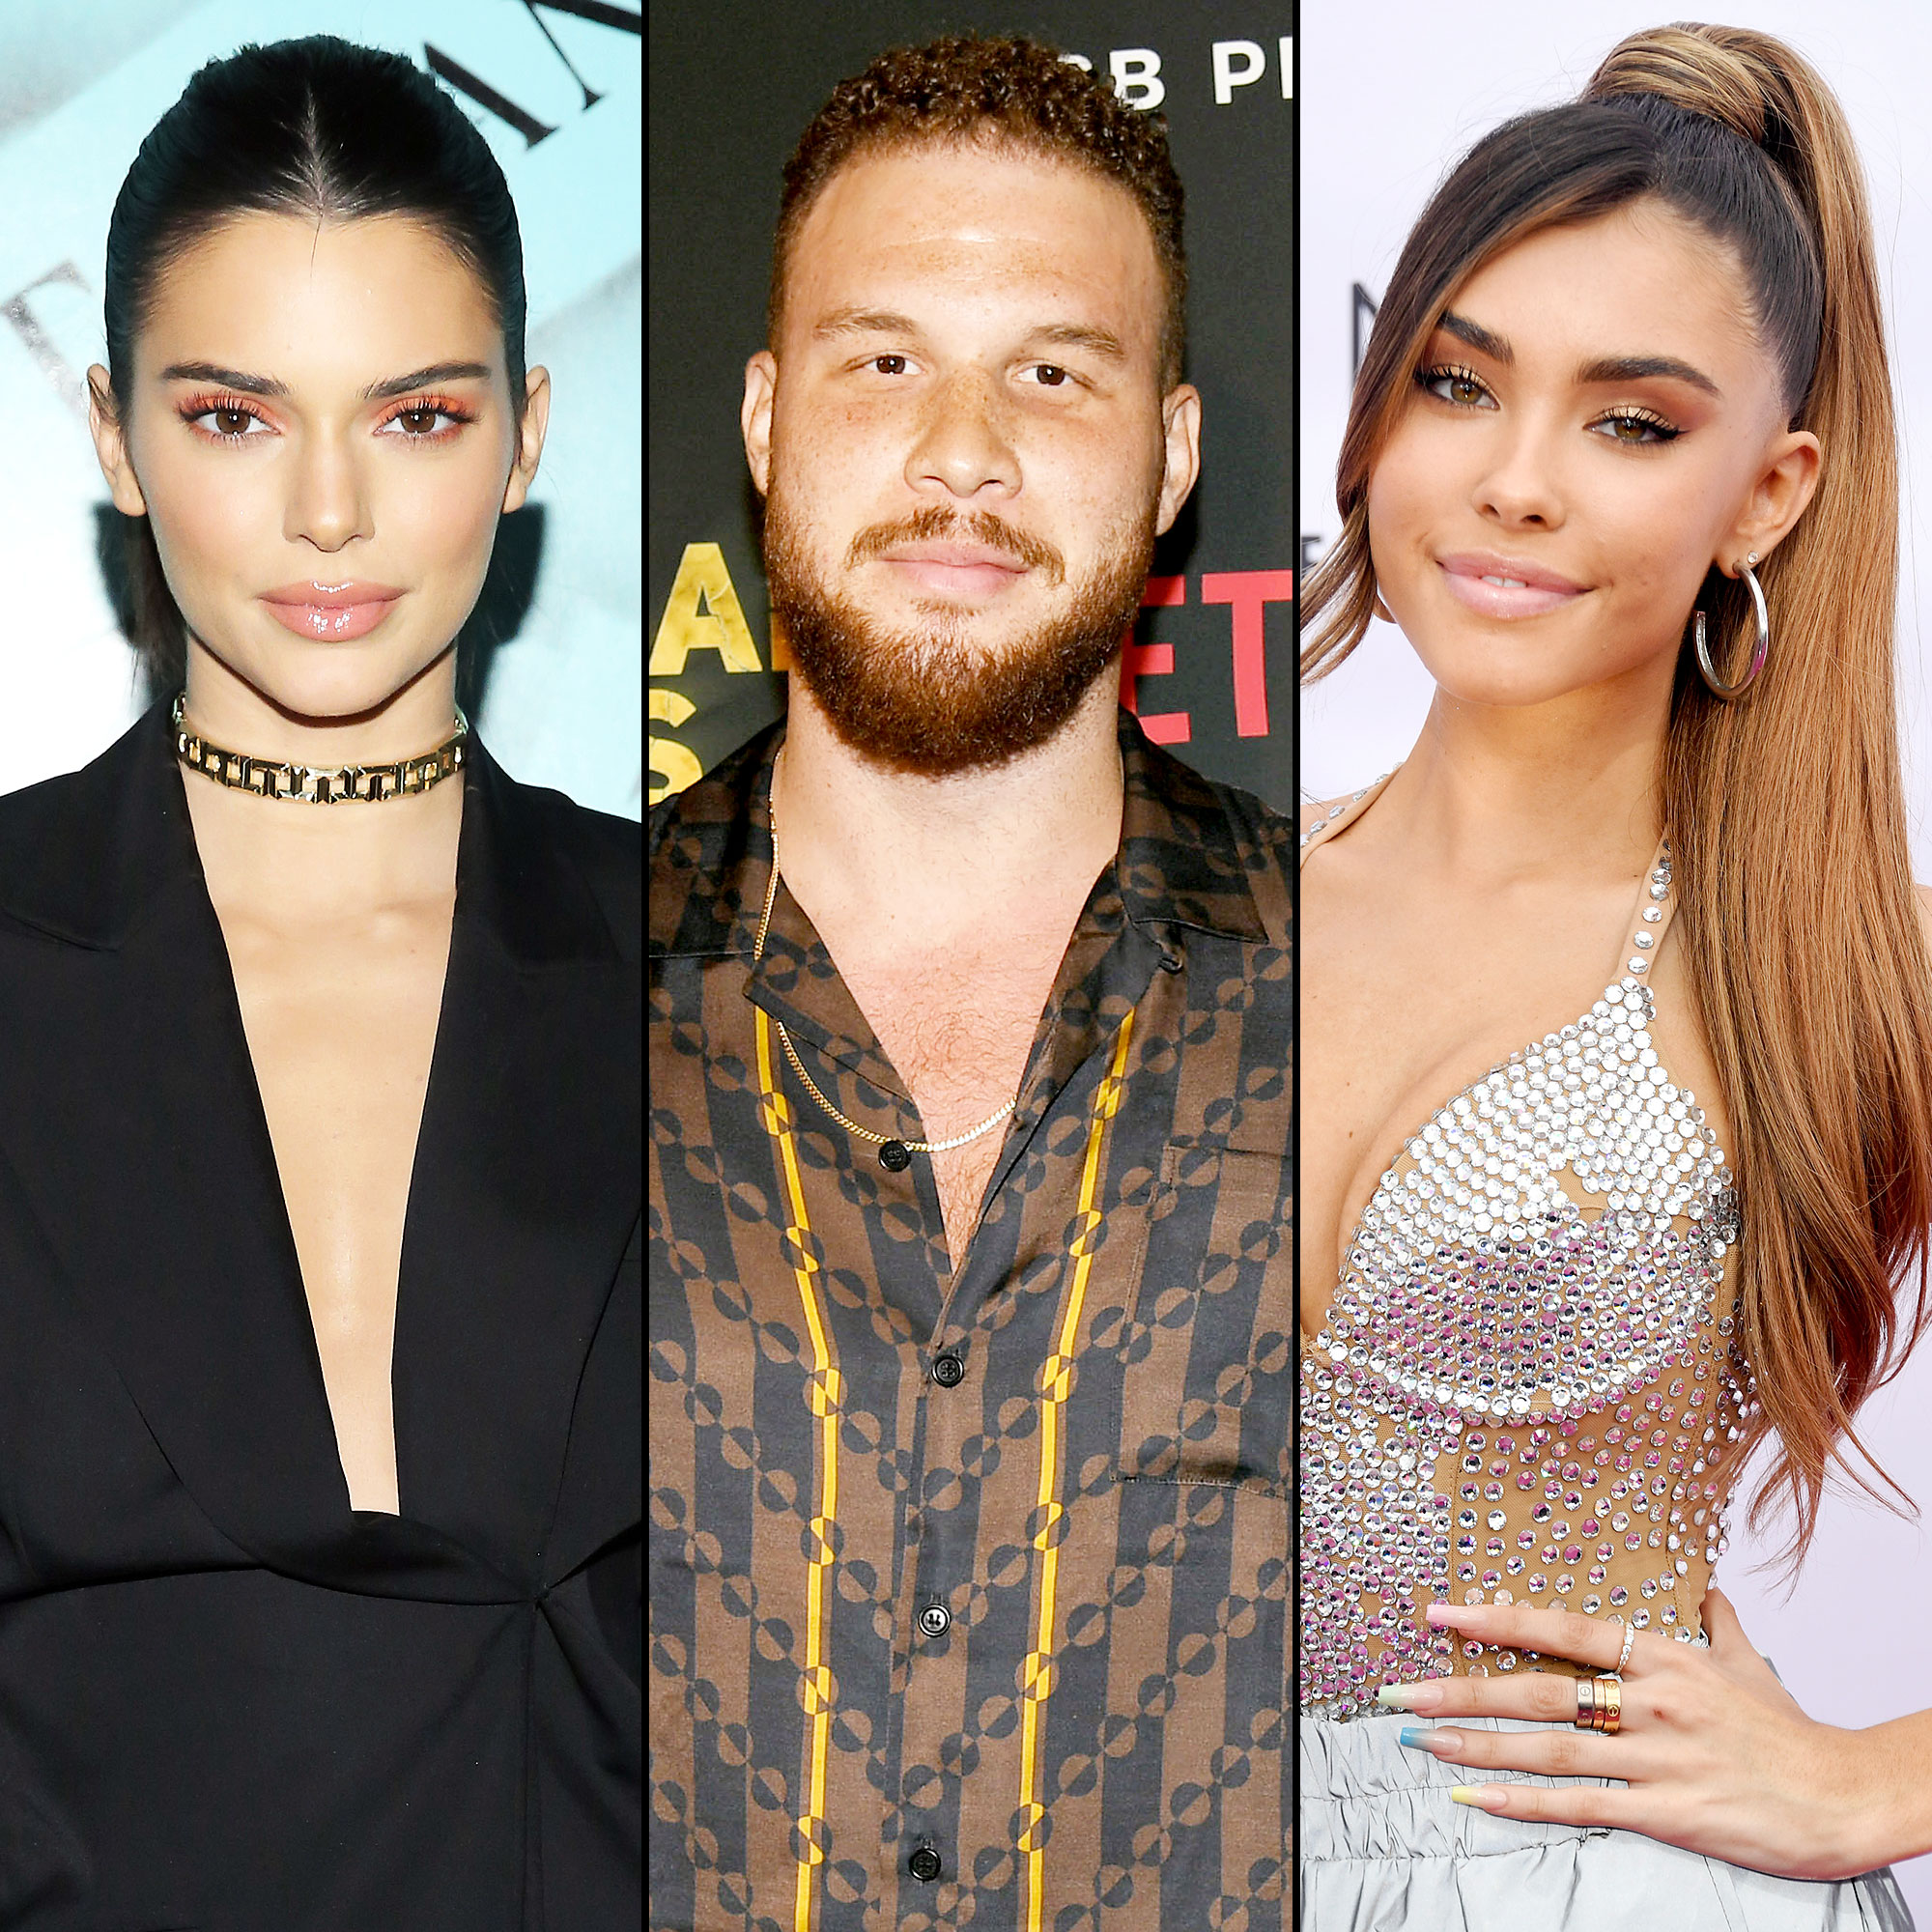 Blake Griffin and Madison Beer Dinner Date After Kendall Jenner Split - Kendall Jenner, Blake Griffin and Madison Beer.